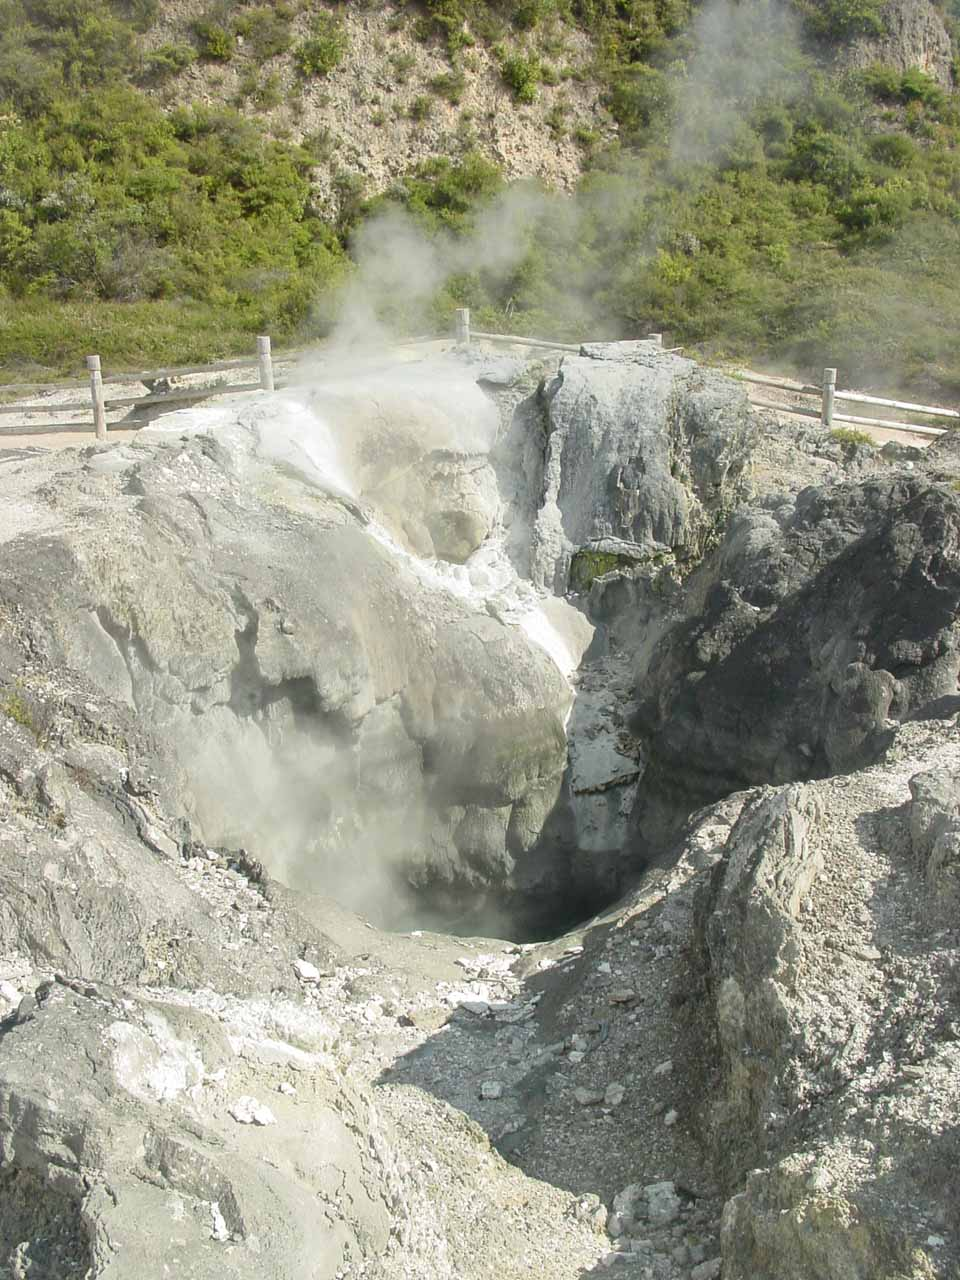 Looking towards some kind of crater formation with steam coming out